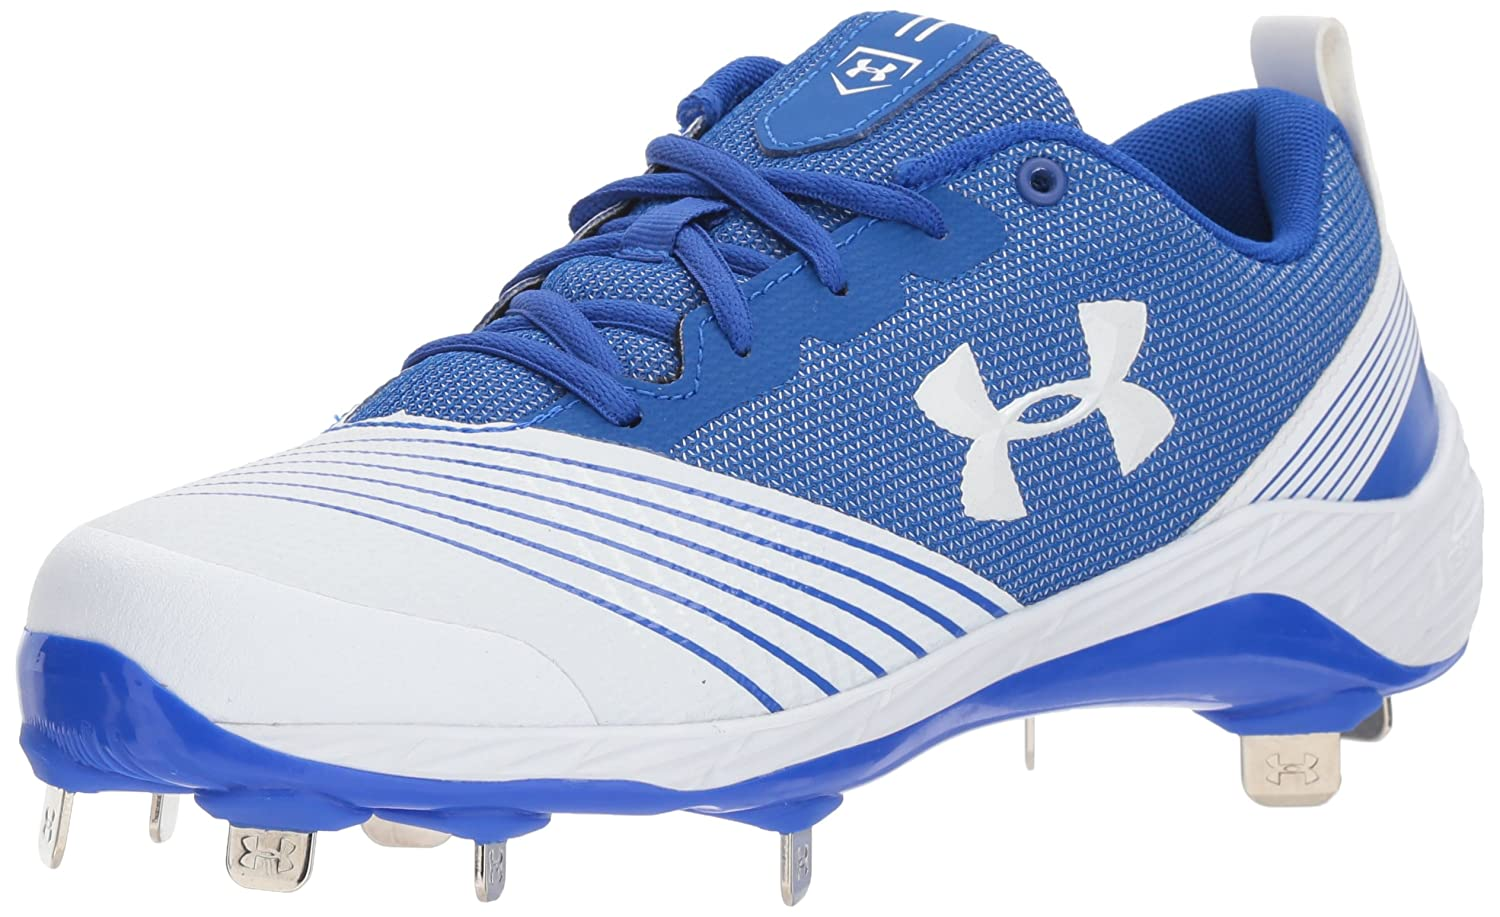 Under Armour Women's Glyde St Softball Shoe B06XCC3PVY 7.5 M US|White (142)/Team Royal